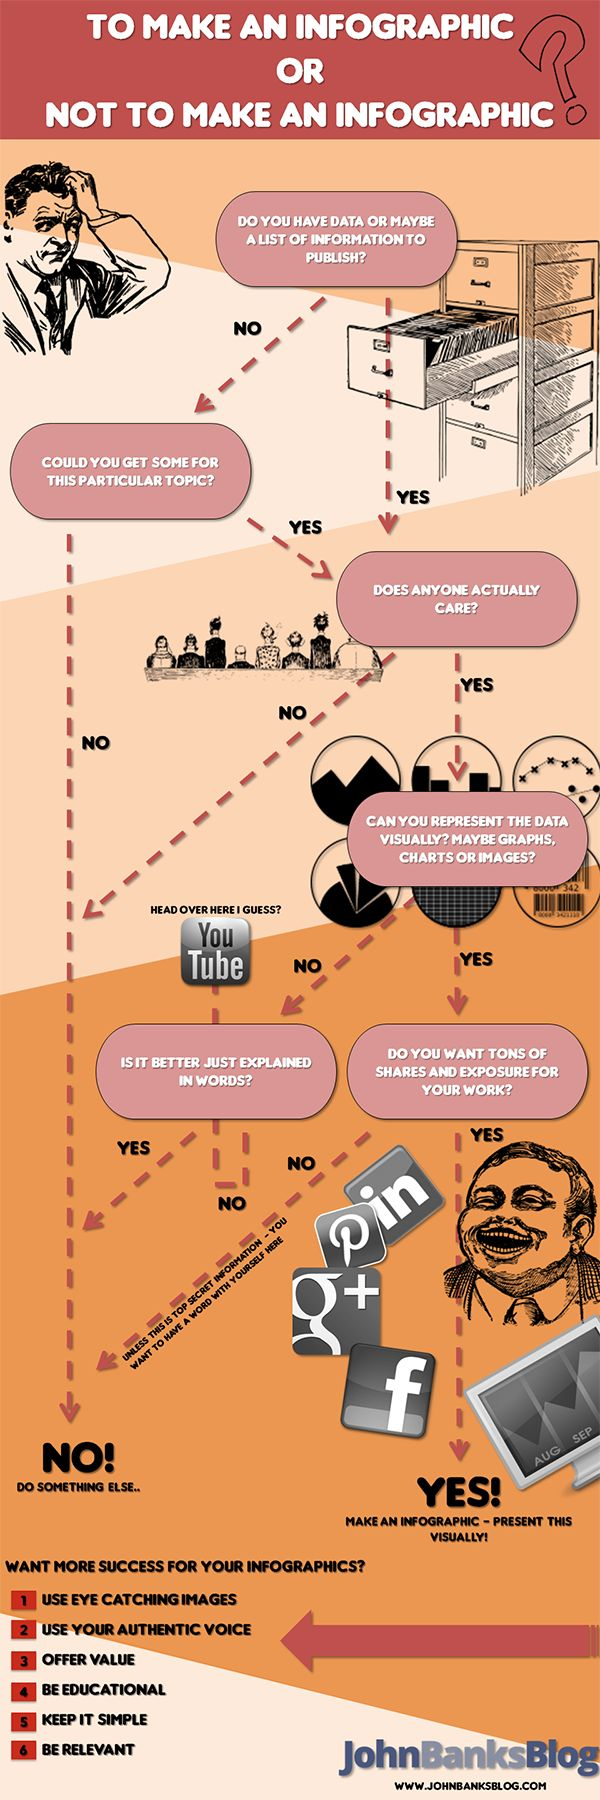 To Make An Infographic or Not To Make An Infographic! #socialmedia #infographic #seo